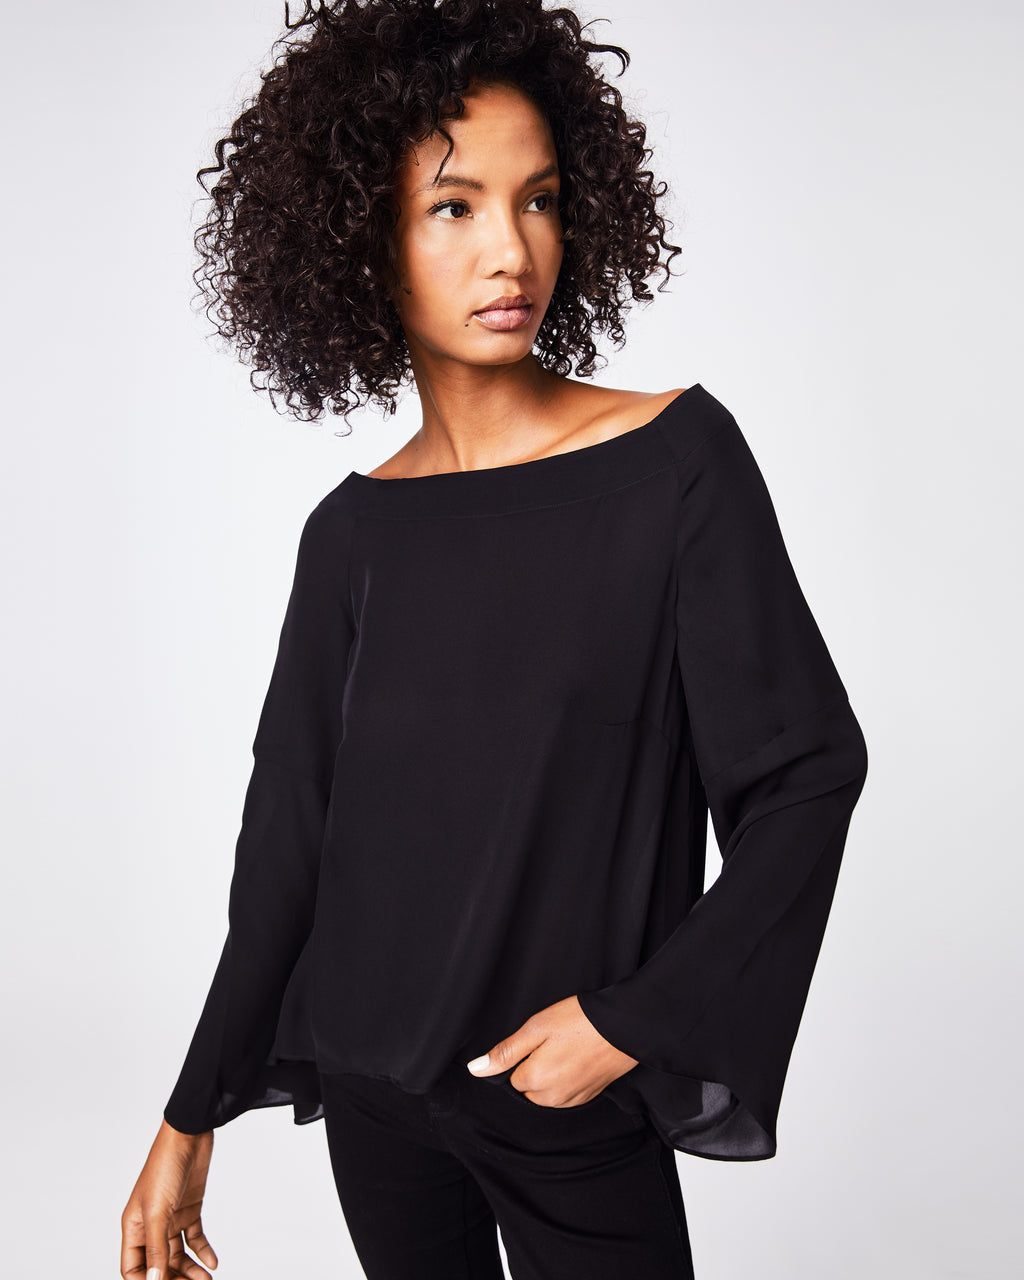 BB10212 - SOLID SILK BLEND OFF THE SHOULDER BLOUSE - tops - blouses - A conservative cut meets a note of flirty. This off the shoulder top has long sleeves that make the in-between months effortless. Fully lined.